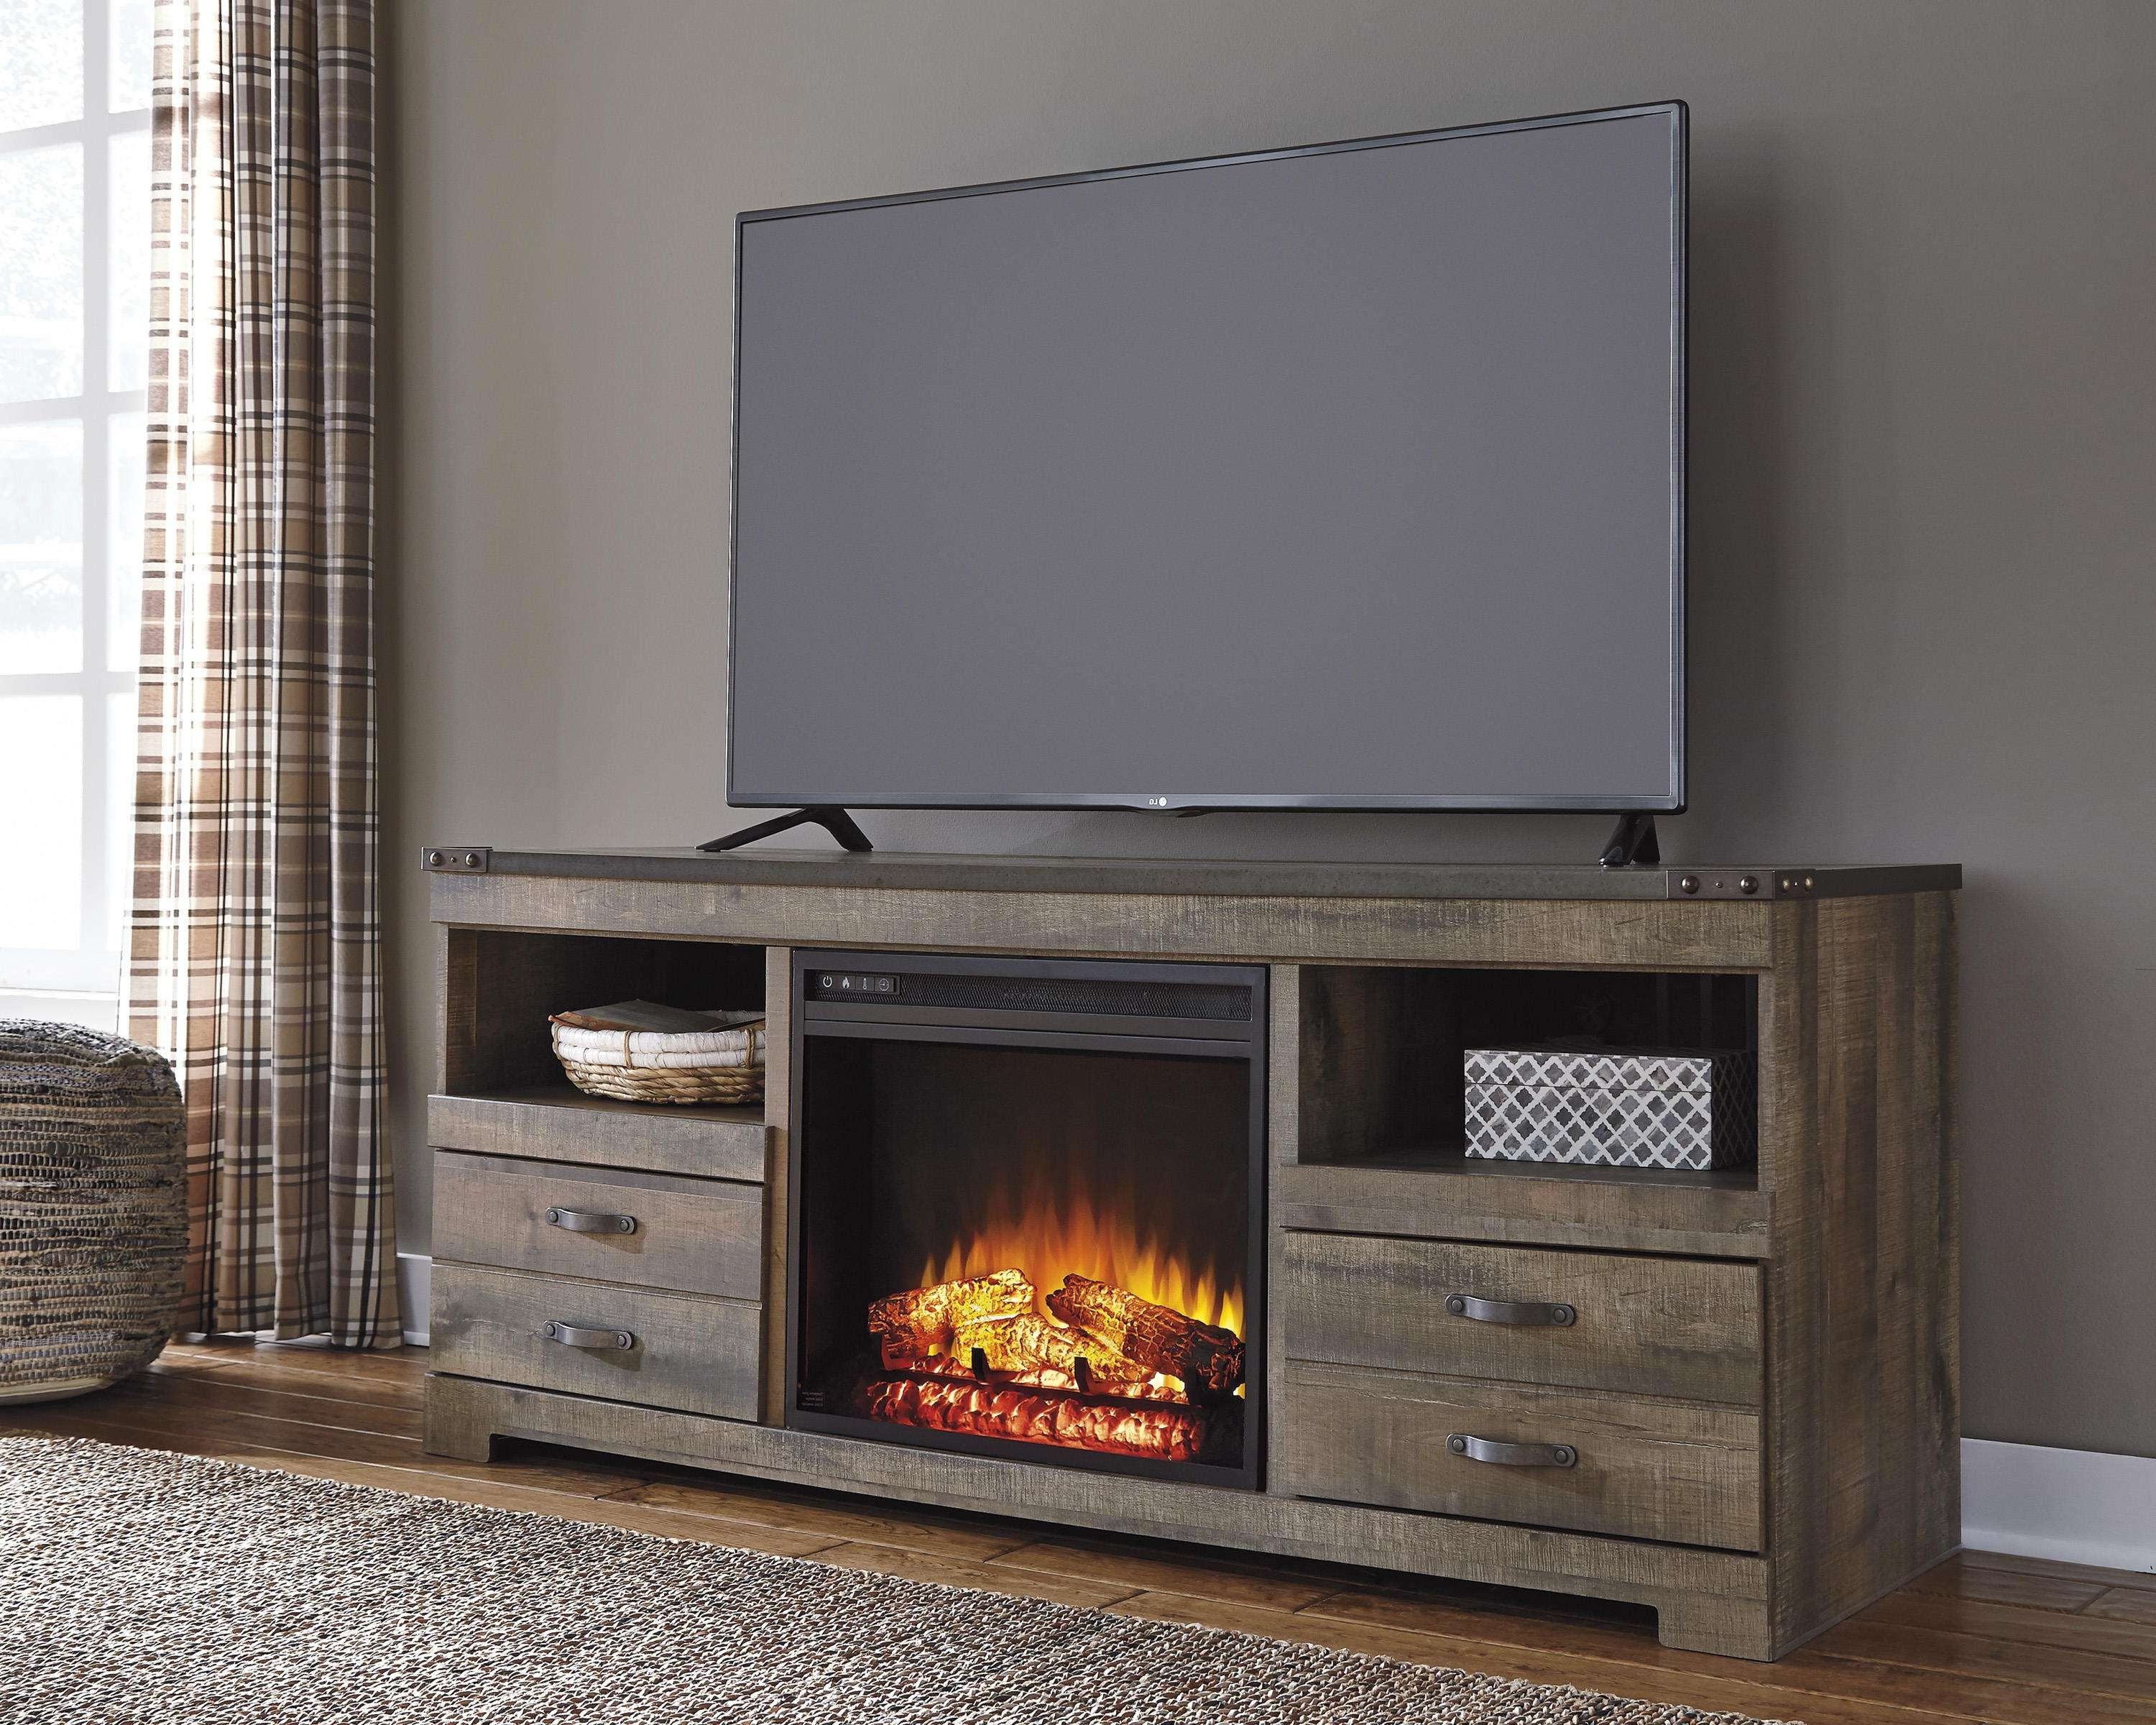 Rustic Large Tv Stand With Fireplace Insertsignature Design Throughout Rustic Looking Tv Stands (View 4 of 15)